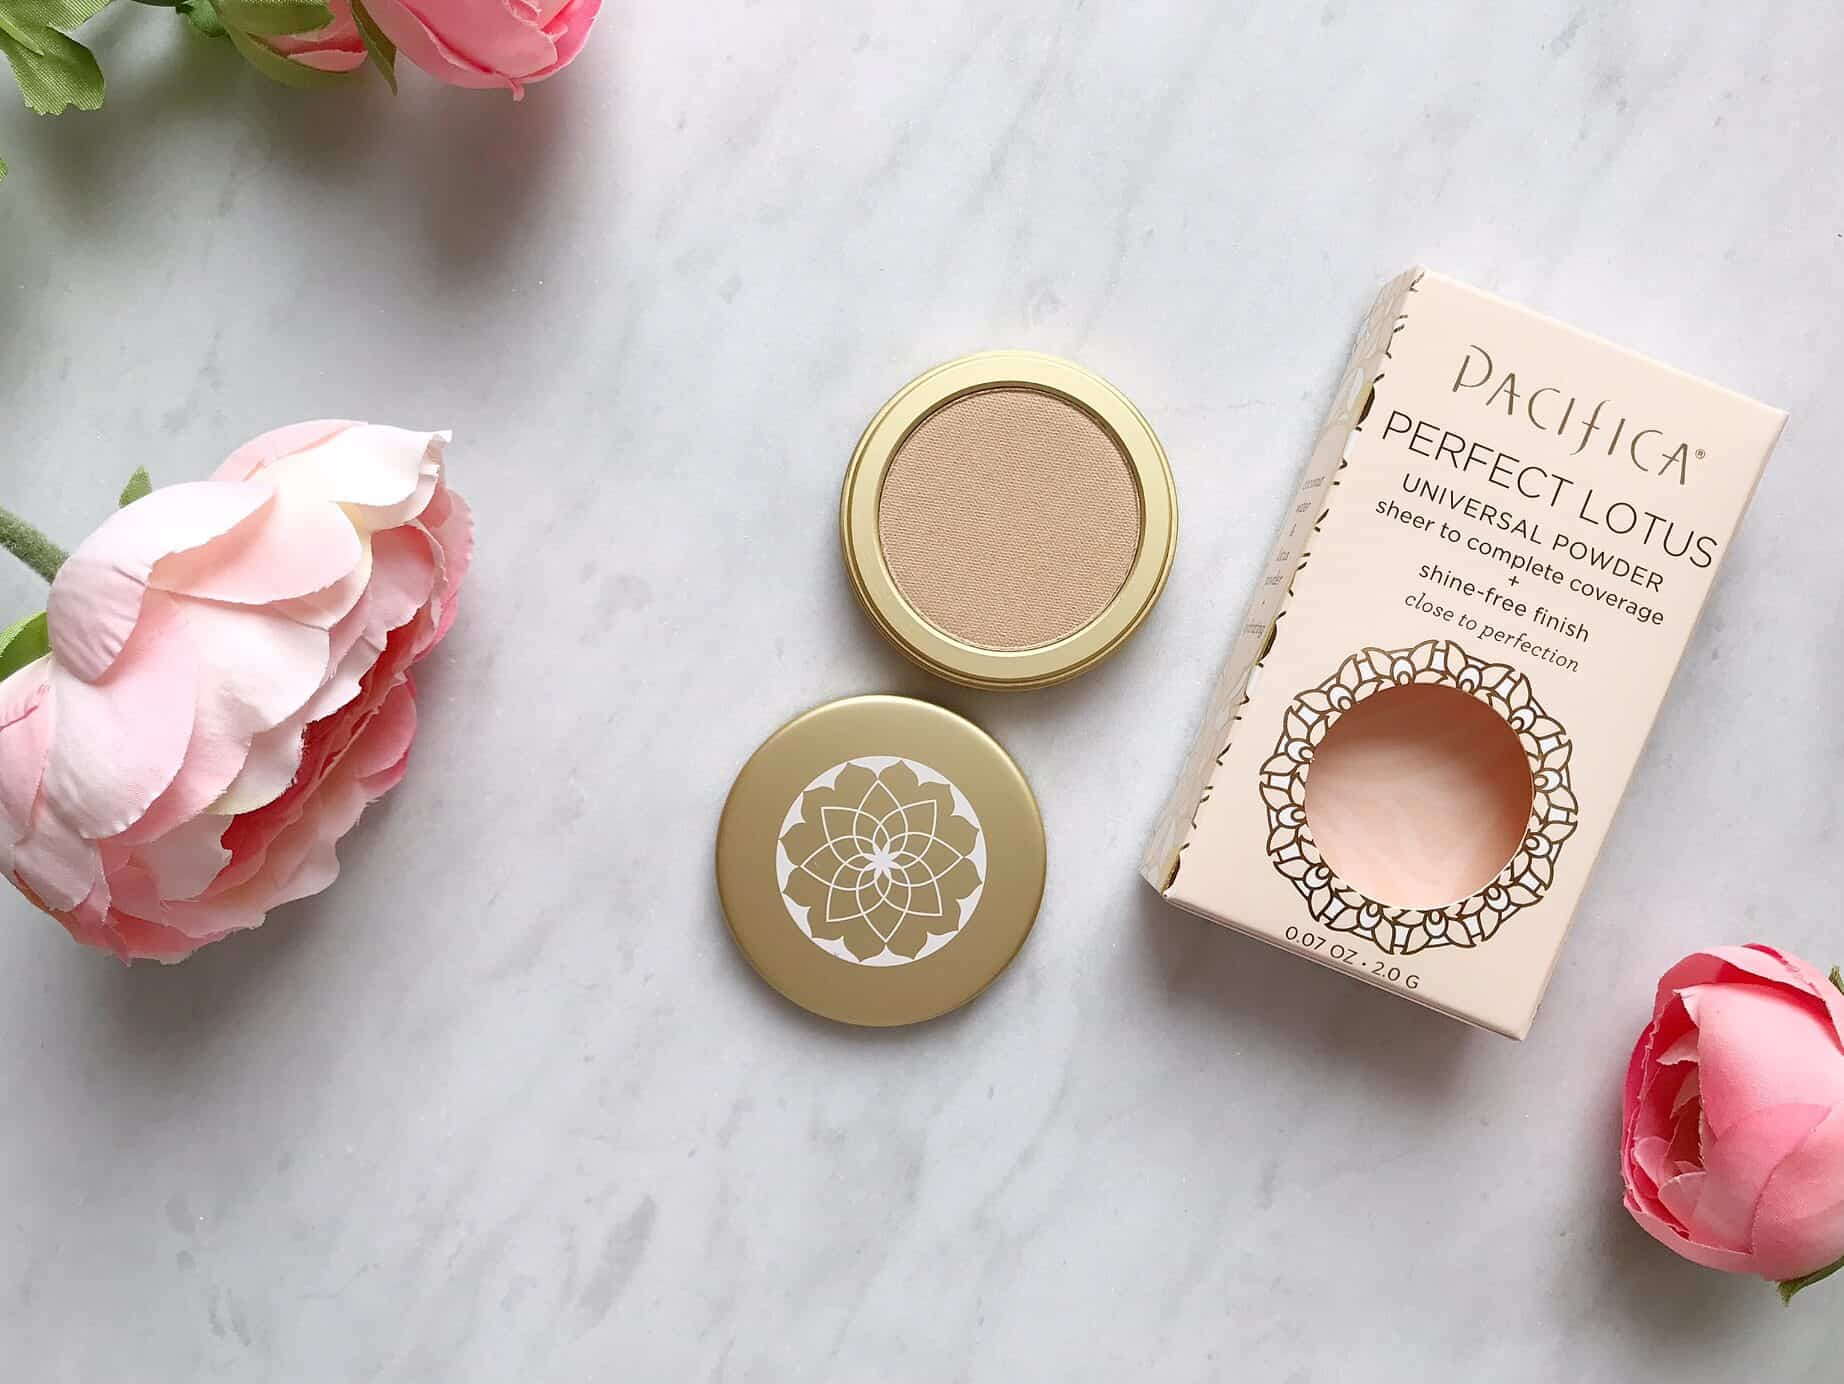 Pacifica Perfect Lotus Universal Powder